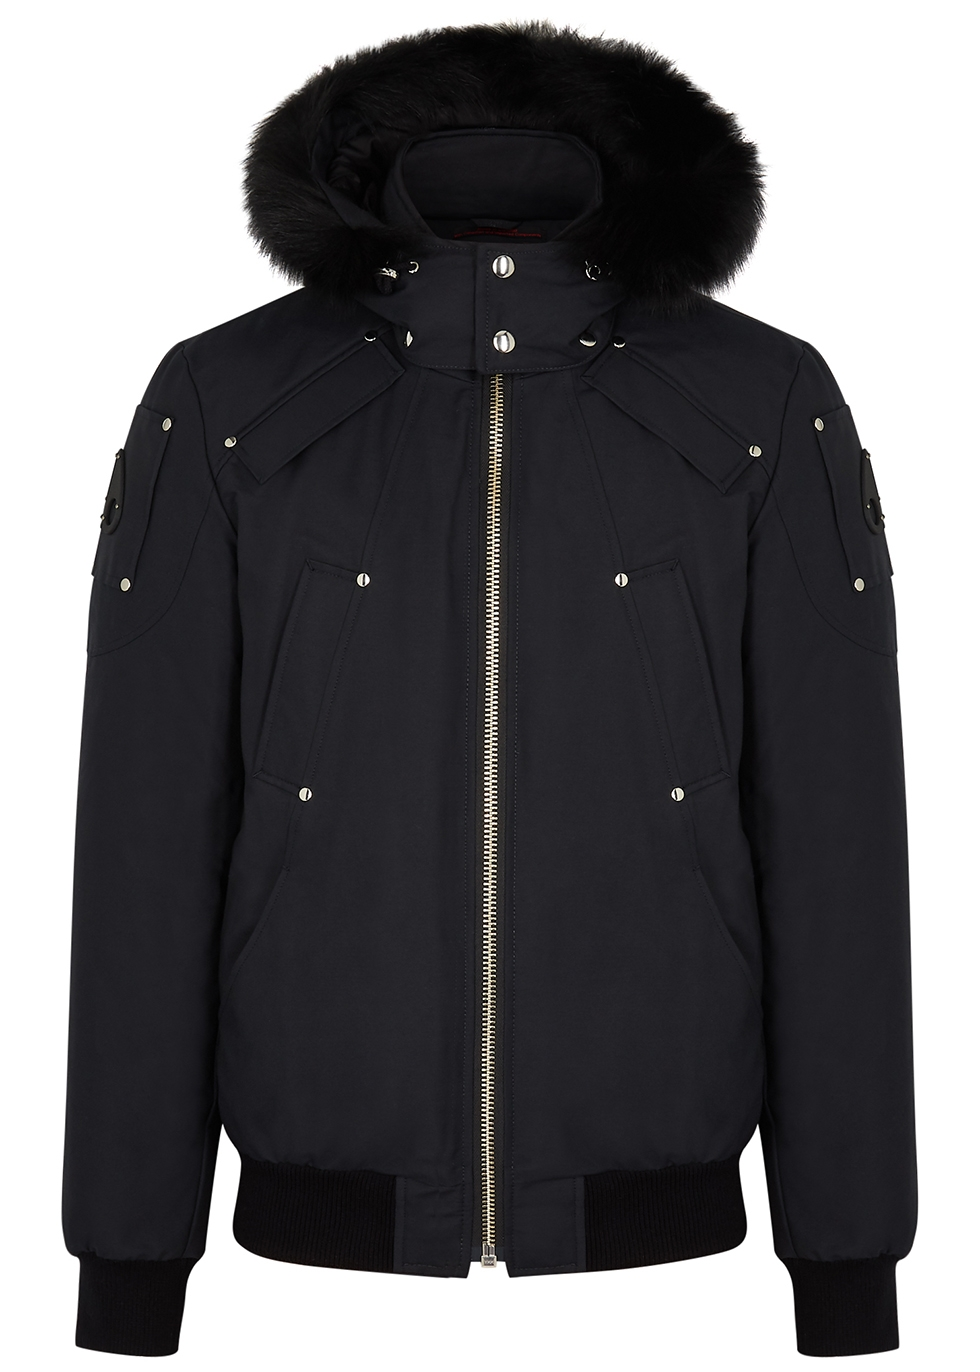 Ballistic fur-trimmed cotton-blend bomber jacket